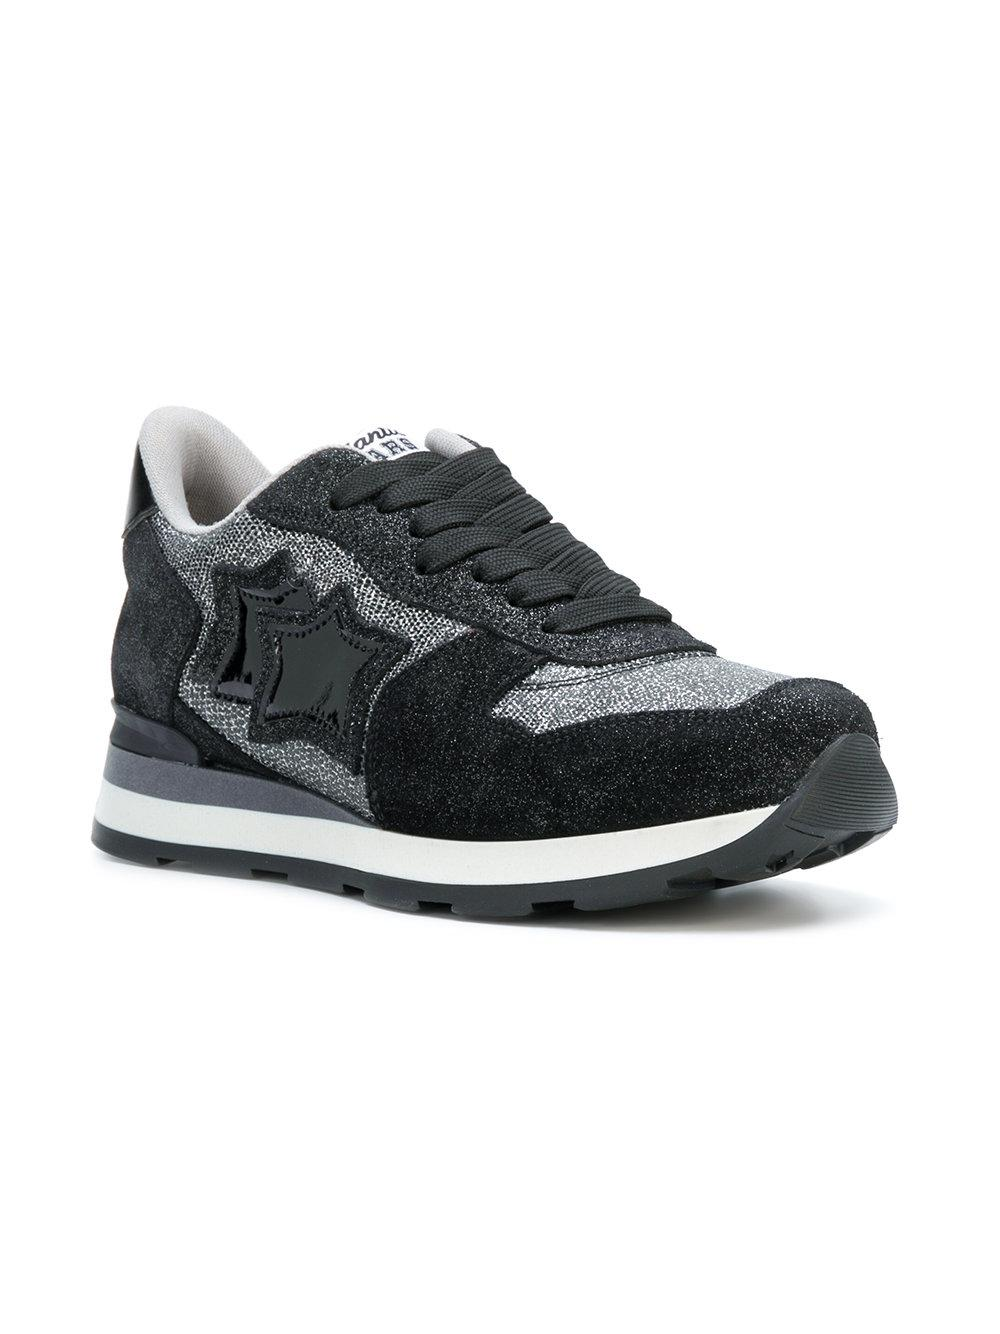 shimmer panelled sneakers - Black Atlantic Stars K88a6N4